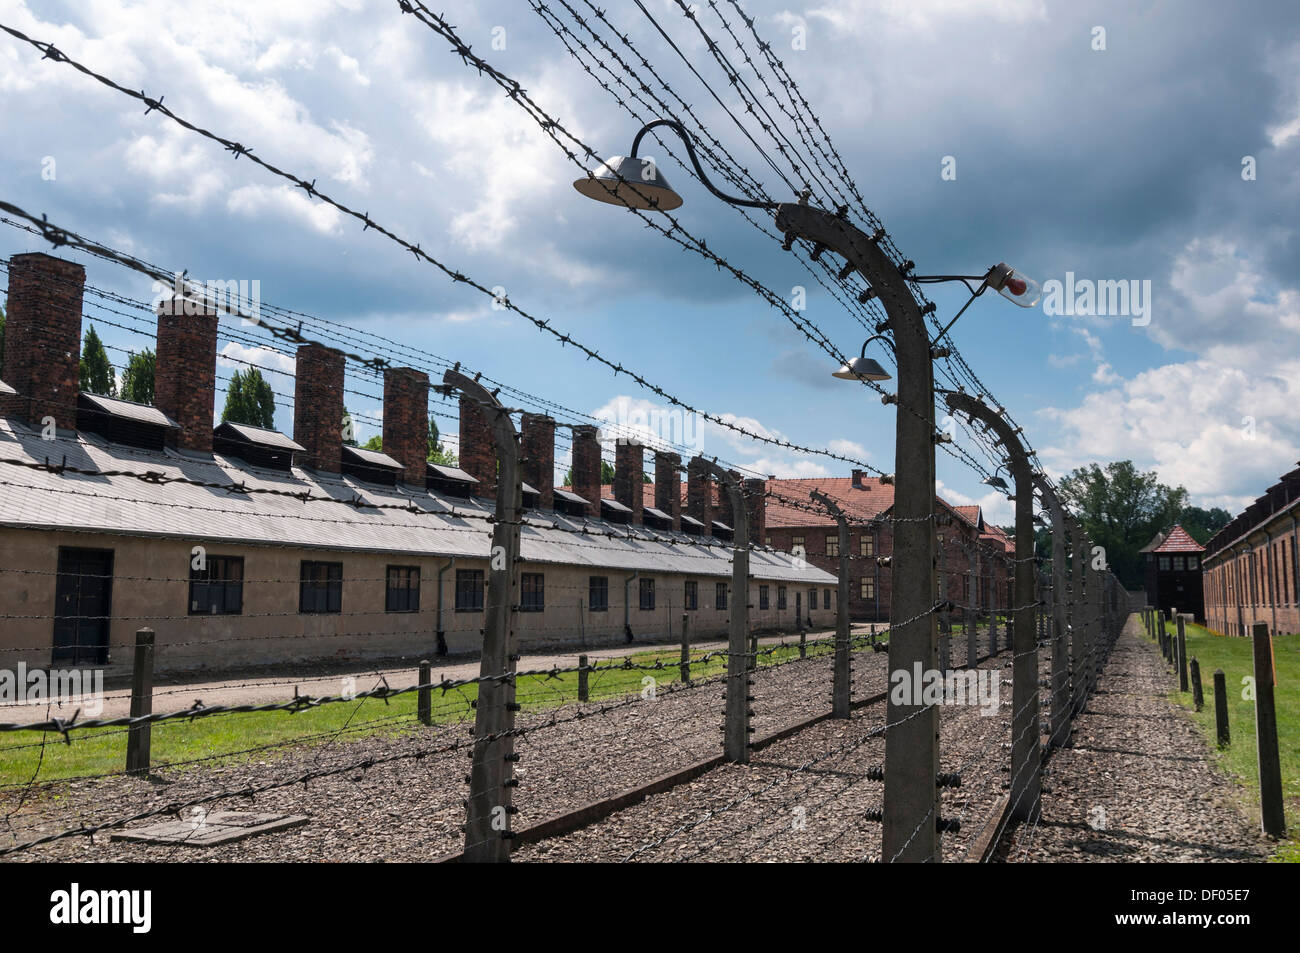 Barbed wire fence and barracks, Auschwitz I concentration camp, Auschwitz, Lesser Poland, Poland, Europe - Stock Image